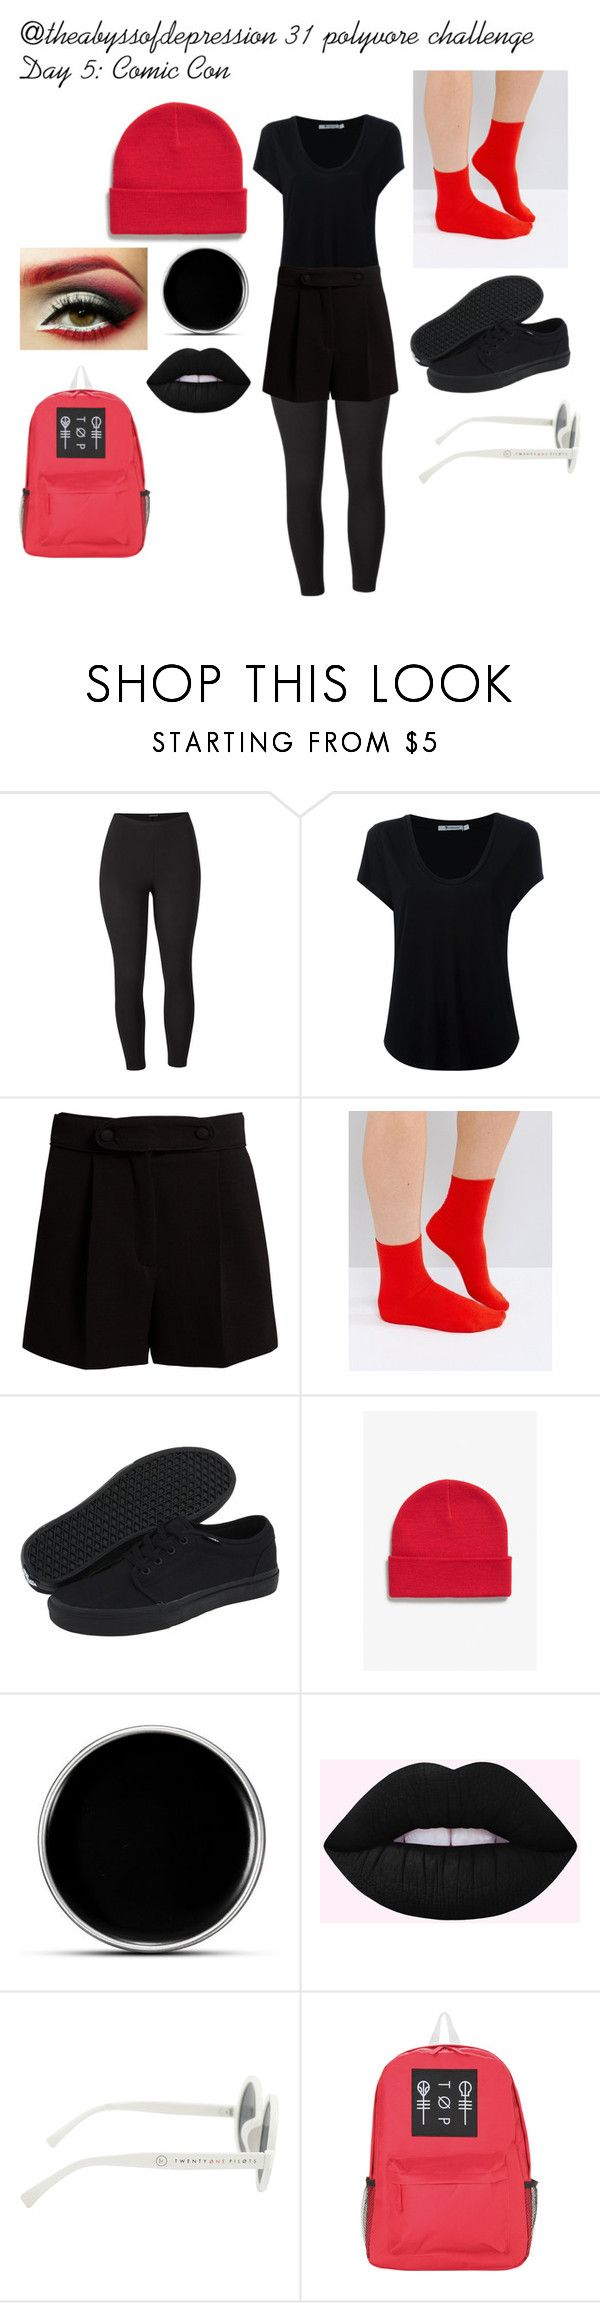 """""""Comic con (blurryface)"""" by gaaaaalaxy ❤ liked on Polyvore featuring Venus, Alexander Wang, Valentino, ASOS, Vans, Monki, Hot Topic and plus size clothing"""